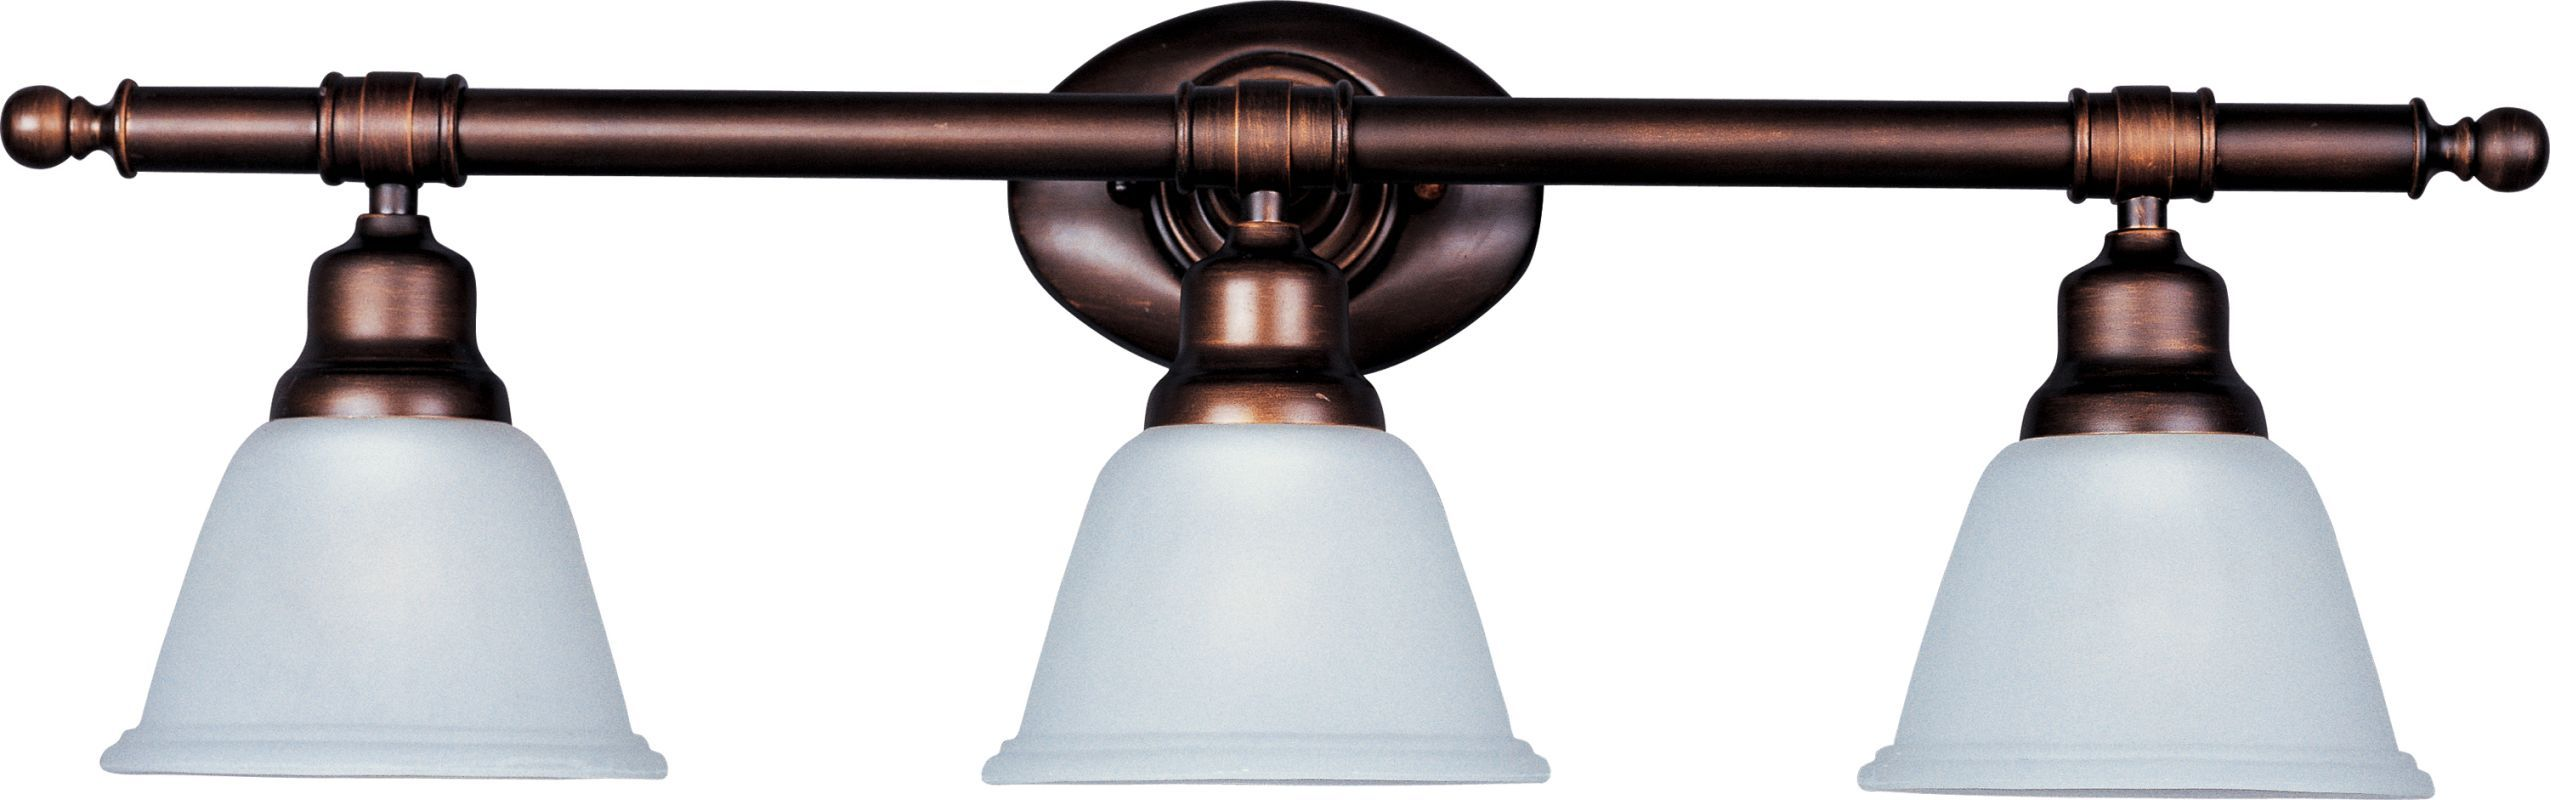 light feiss rubbed bathroom clayton by fixtures bronze lighting pin collection oil